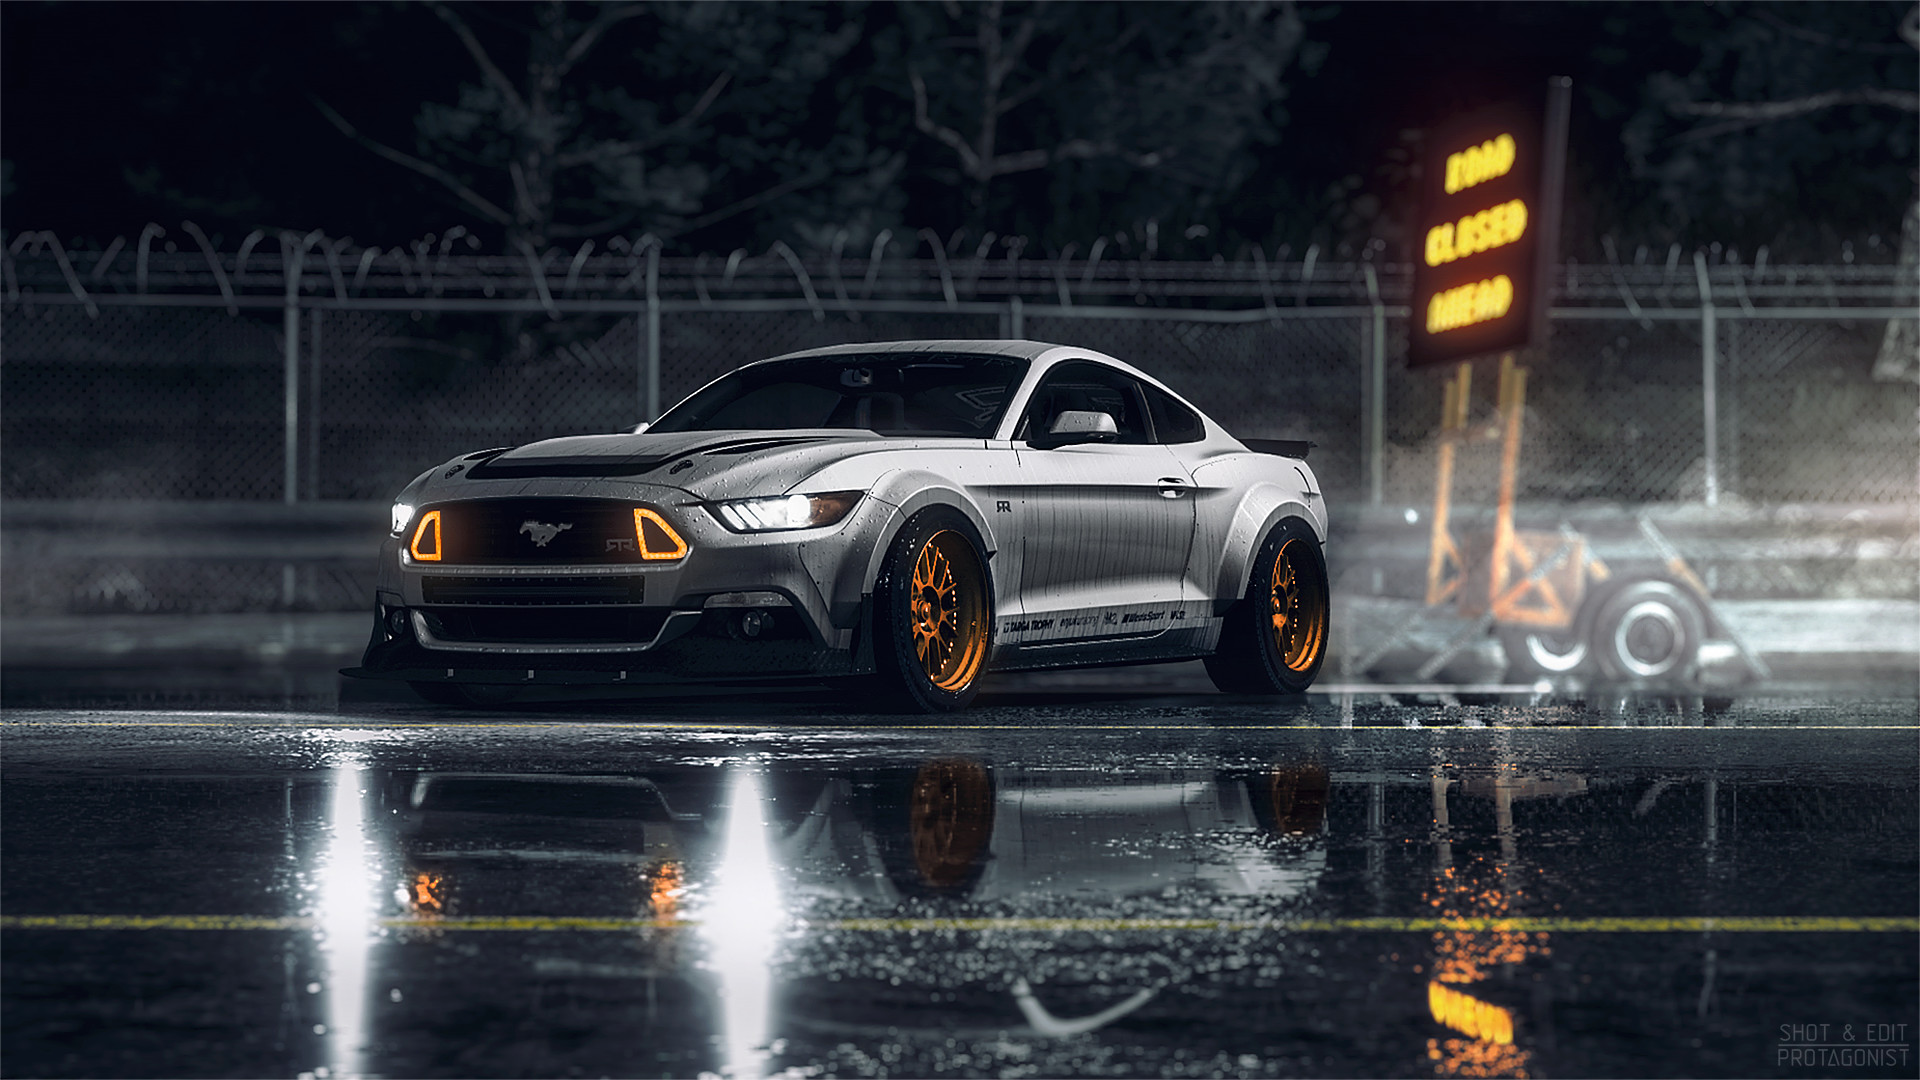 Need for speed wallpaper 36 1920x1080 for Need for speed wallpaper